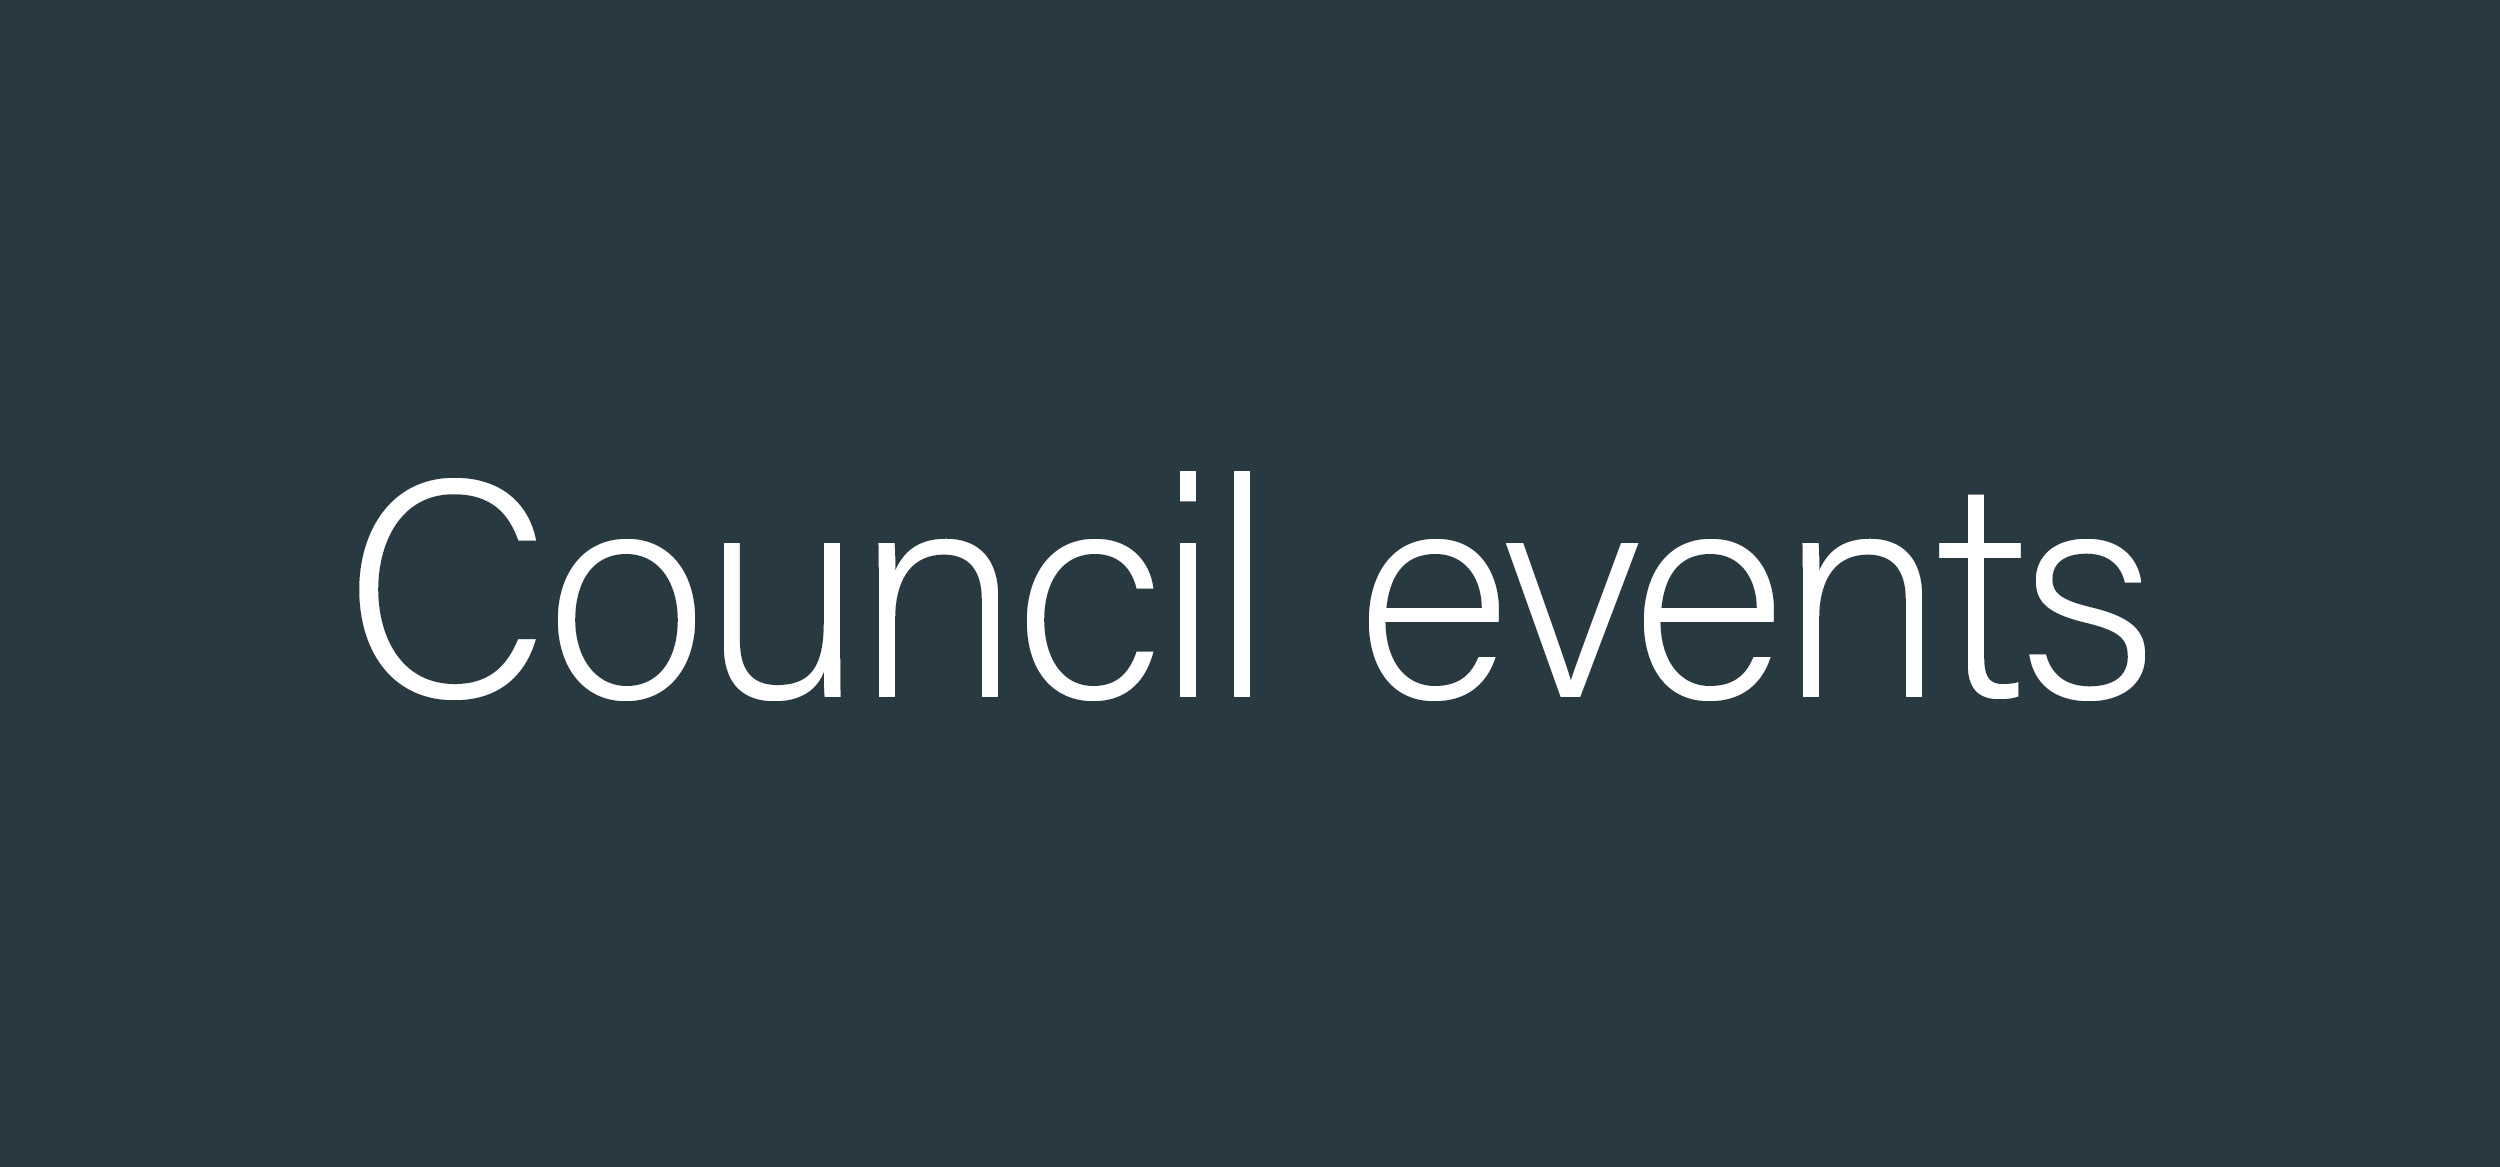 Council events